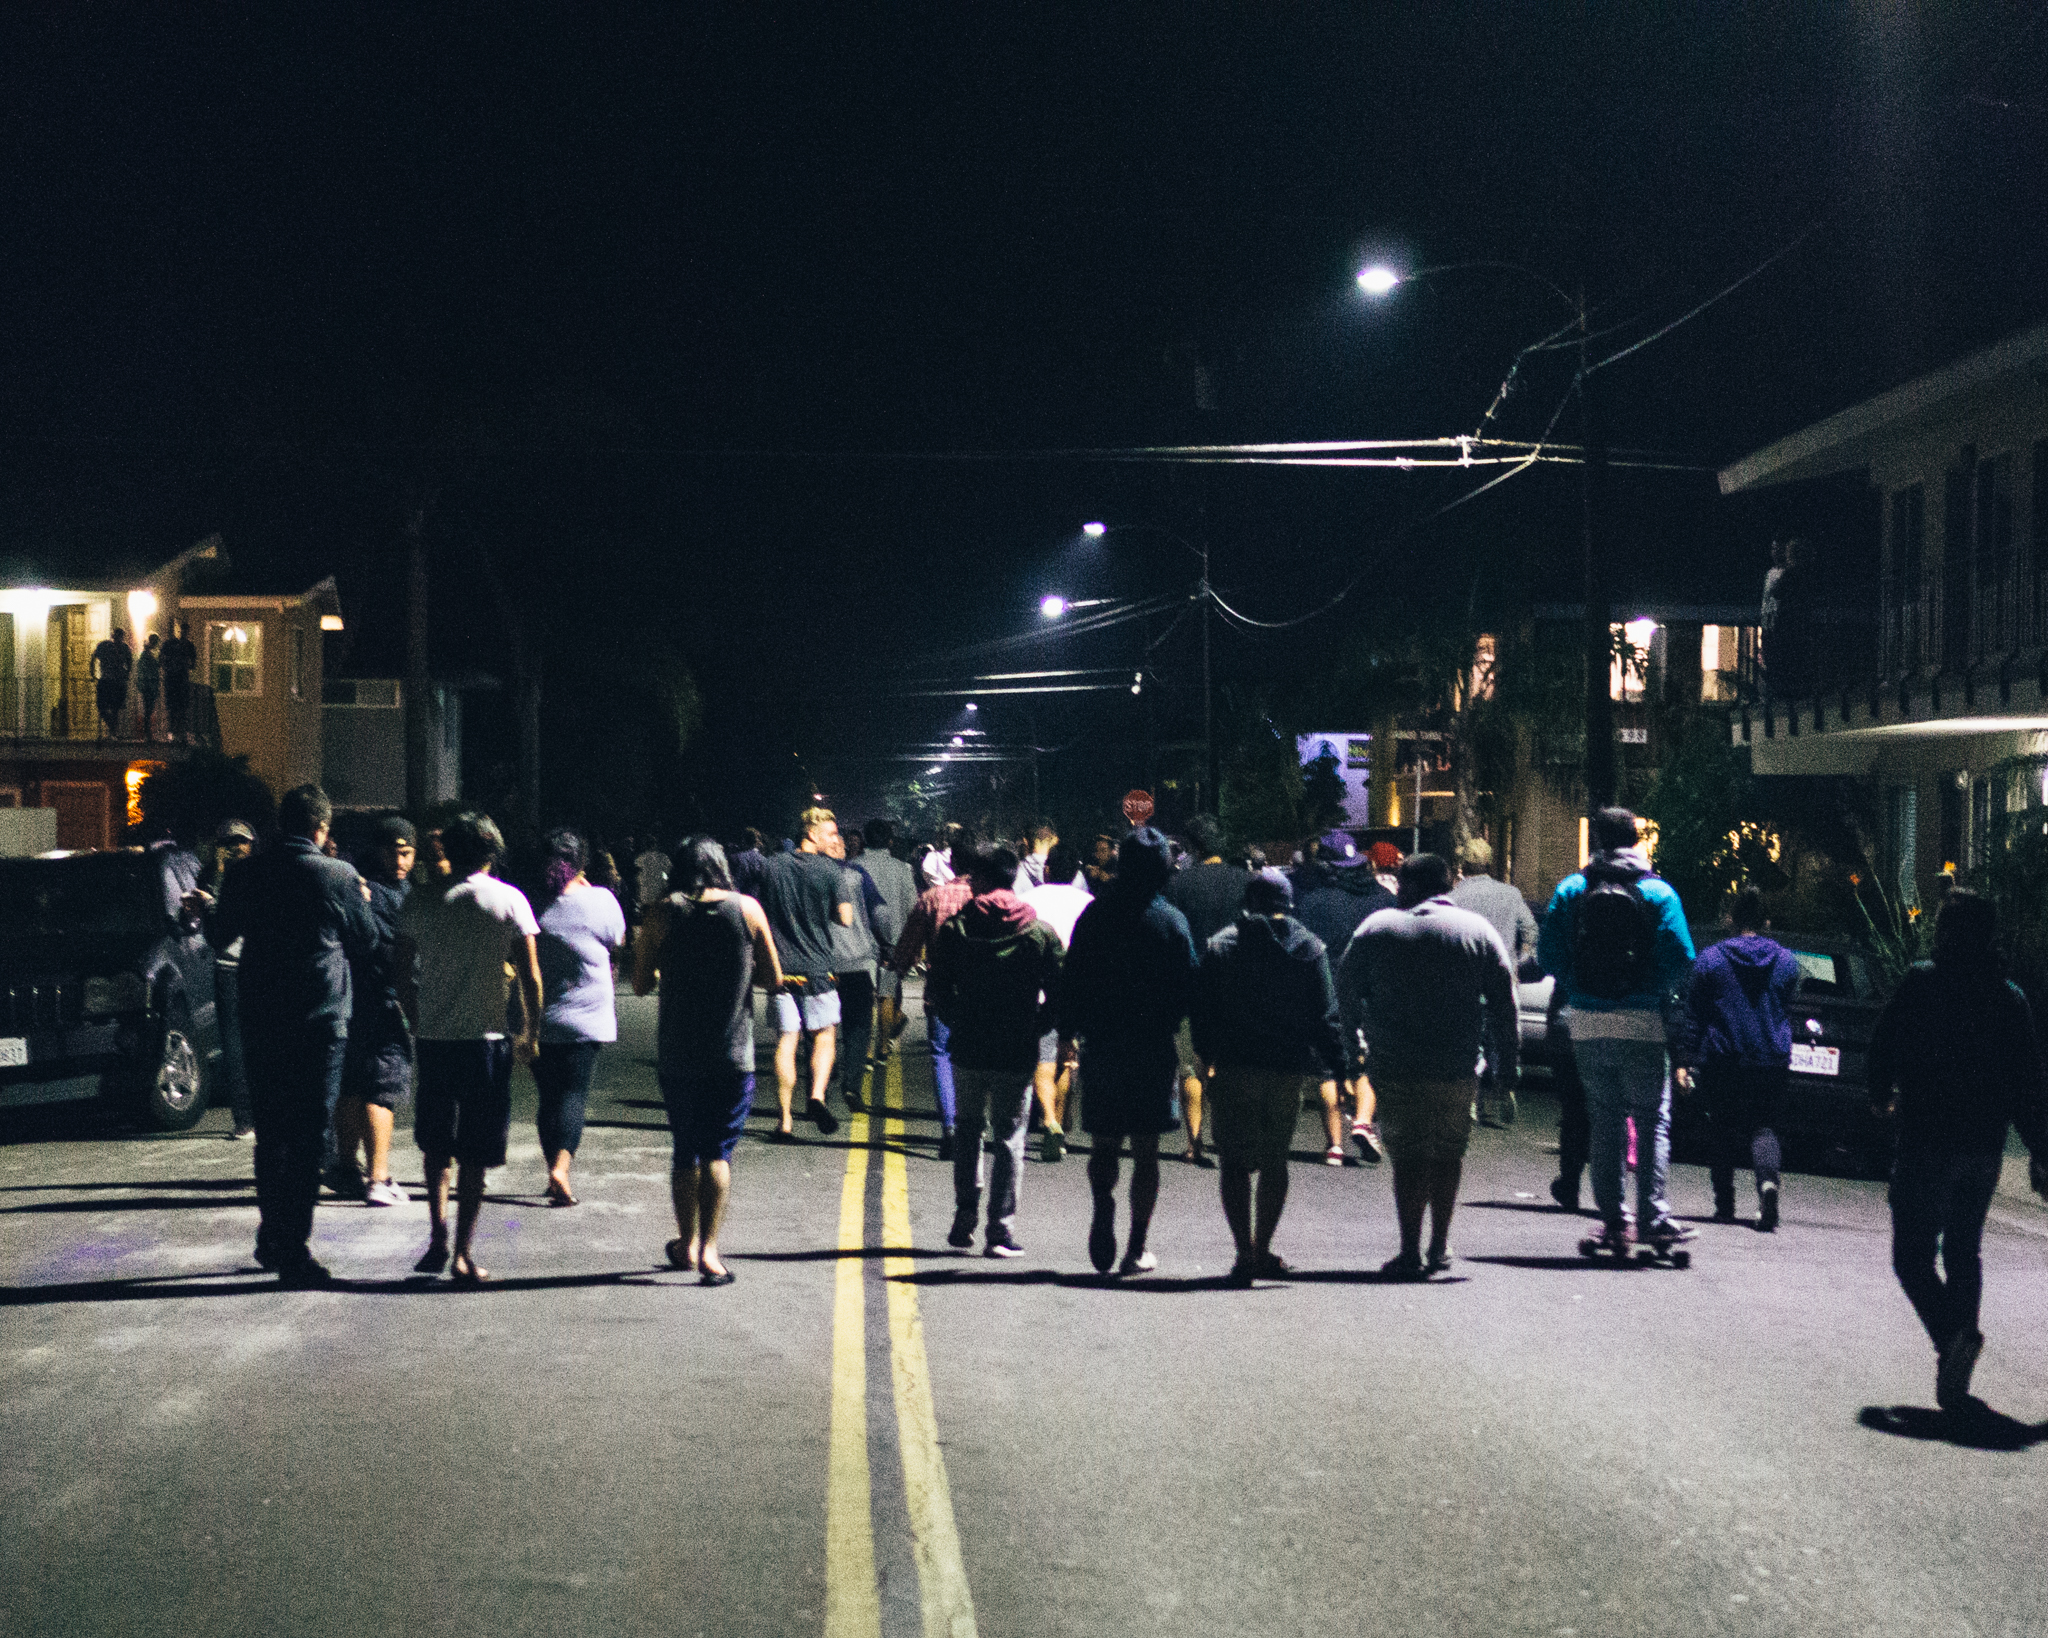 Students left their houses and apartments in Isla Vista to join the movement, which originated from campus. (Photo by Mark Lasa/Staff Photographer)